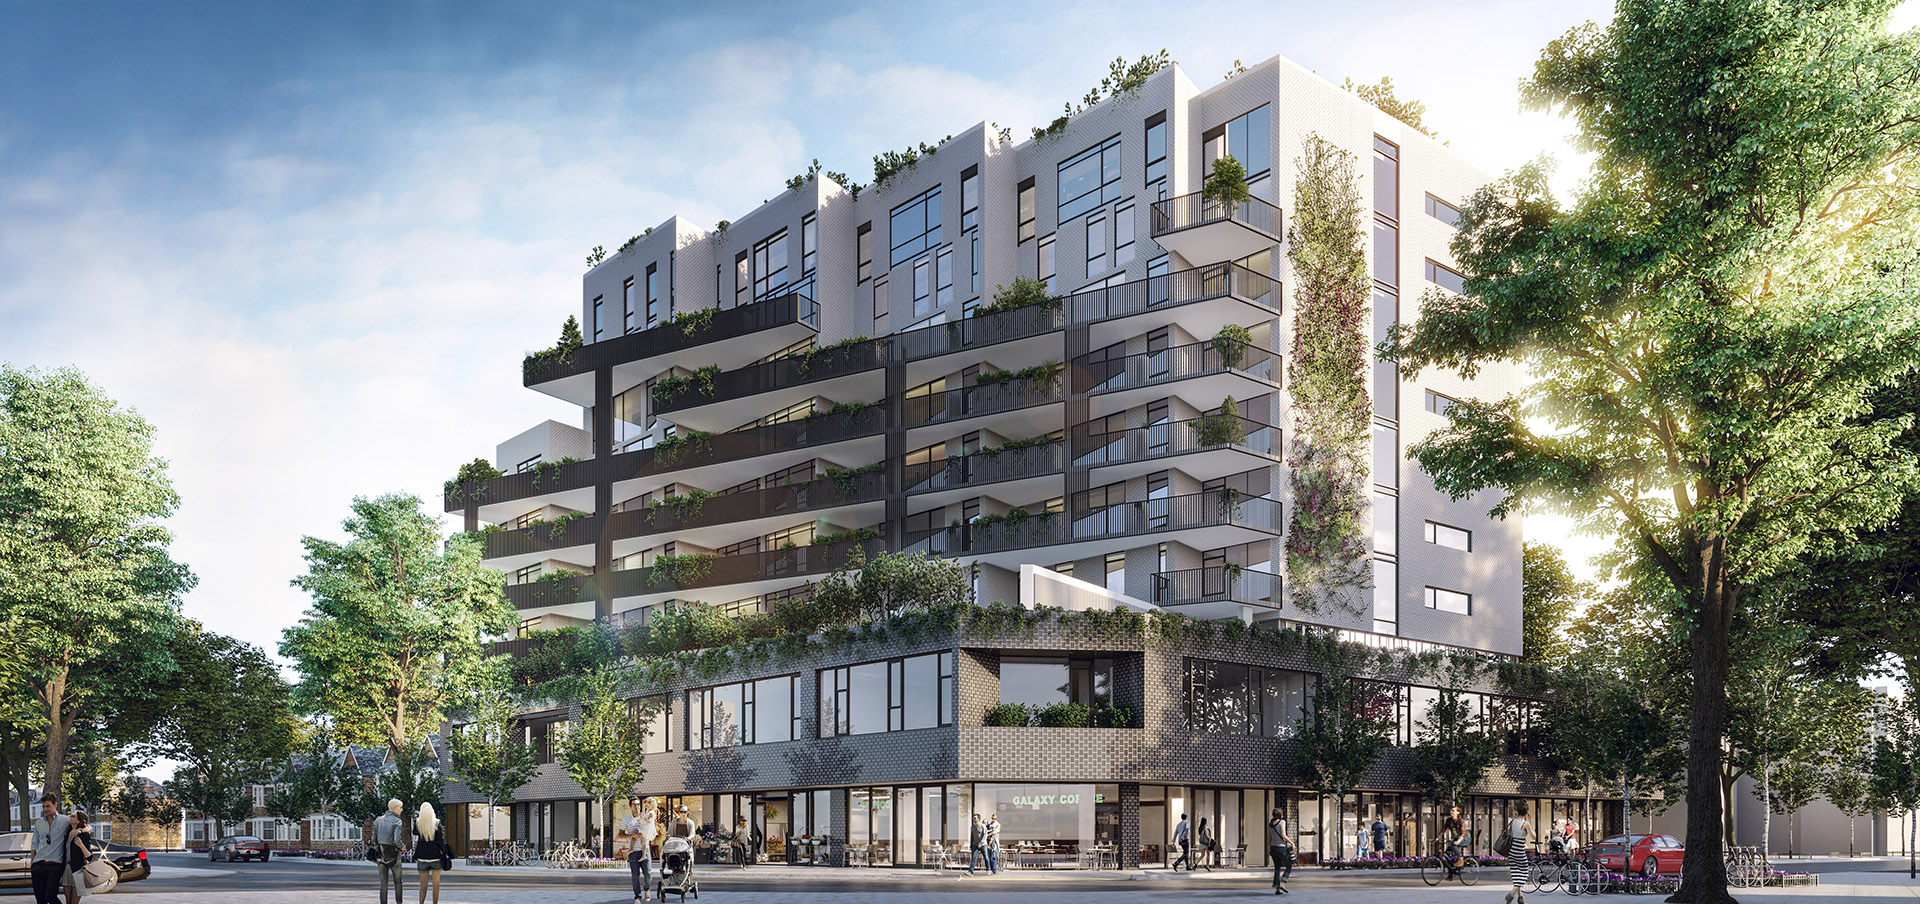 The Plant is a mixed-use condo designed according to the same One Planet Living principles guiding Windmill's Zibi project in Ottawa, with an emphasis on residential urban agriculture. Image via TAS